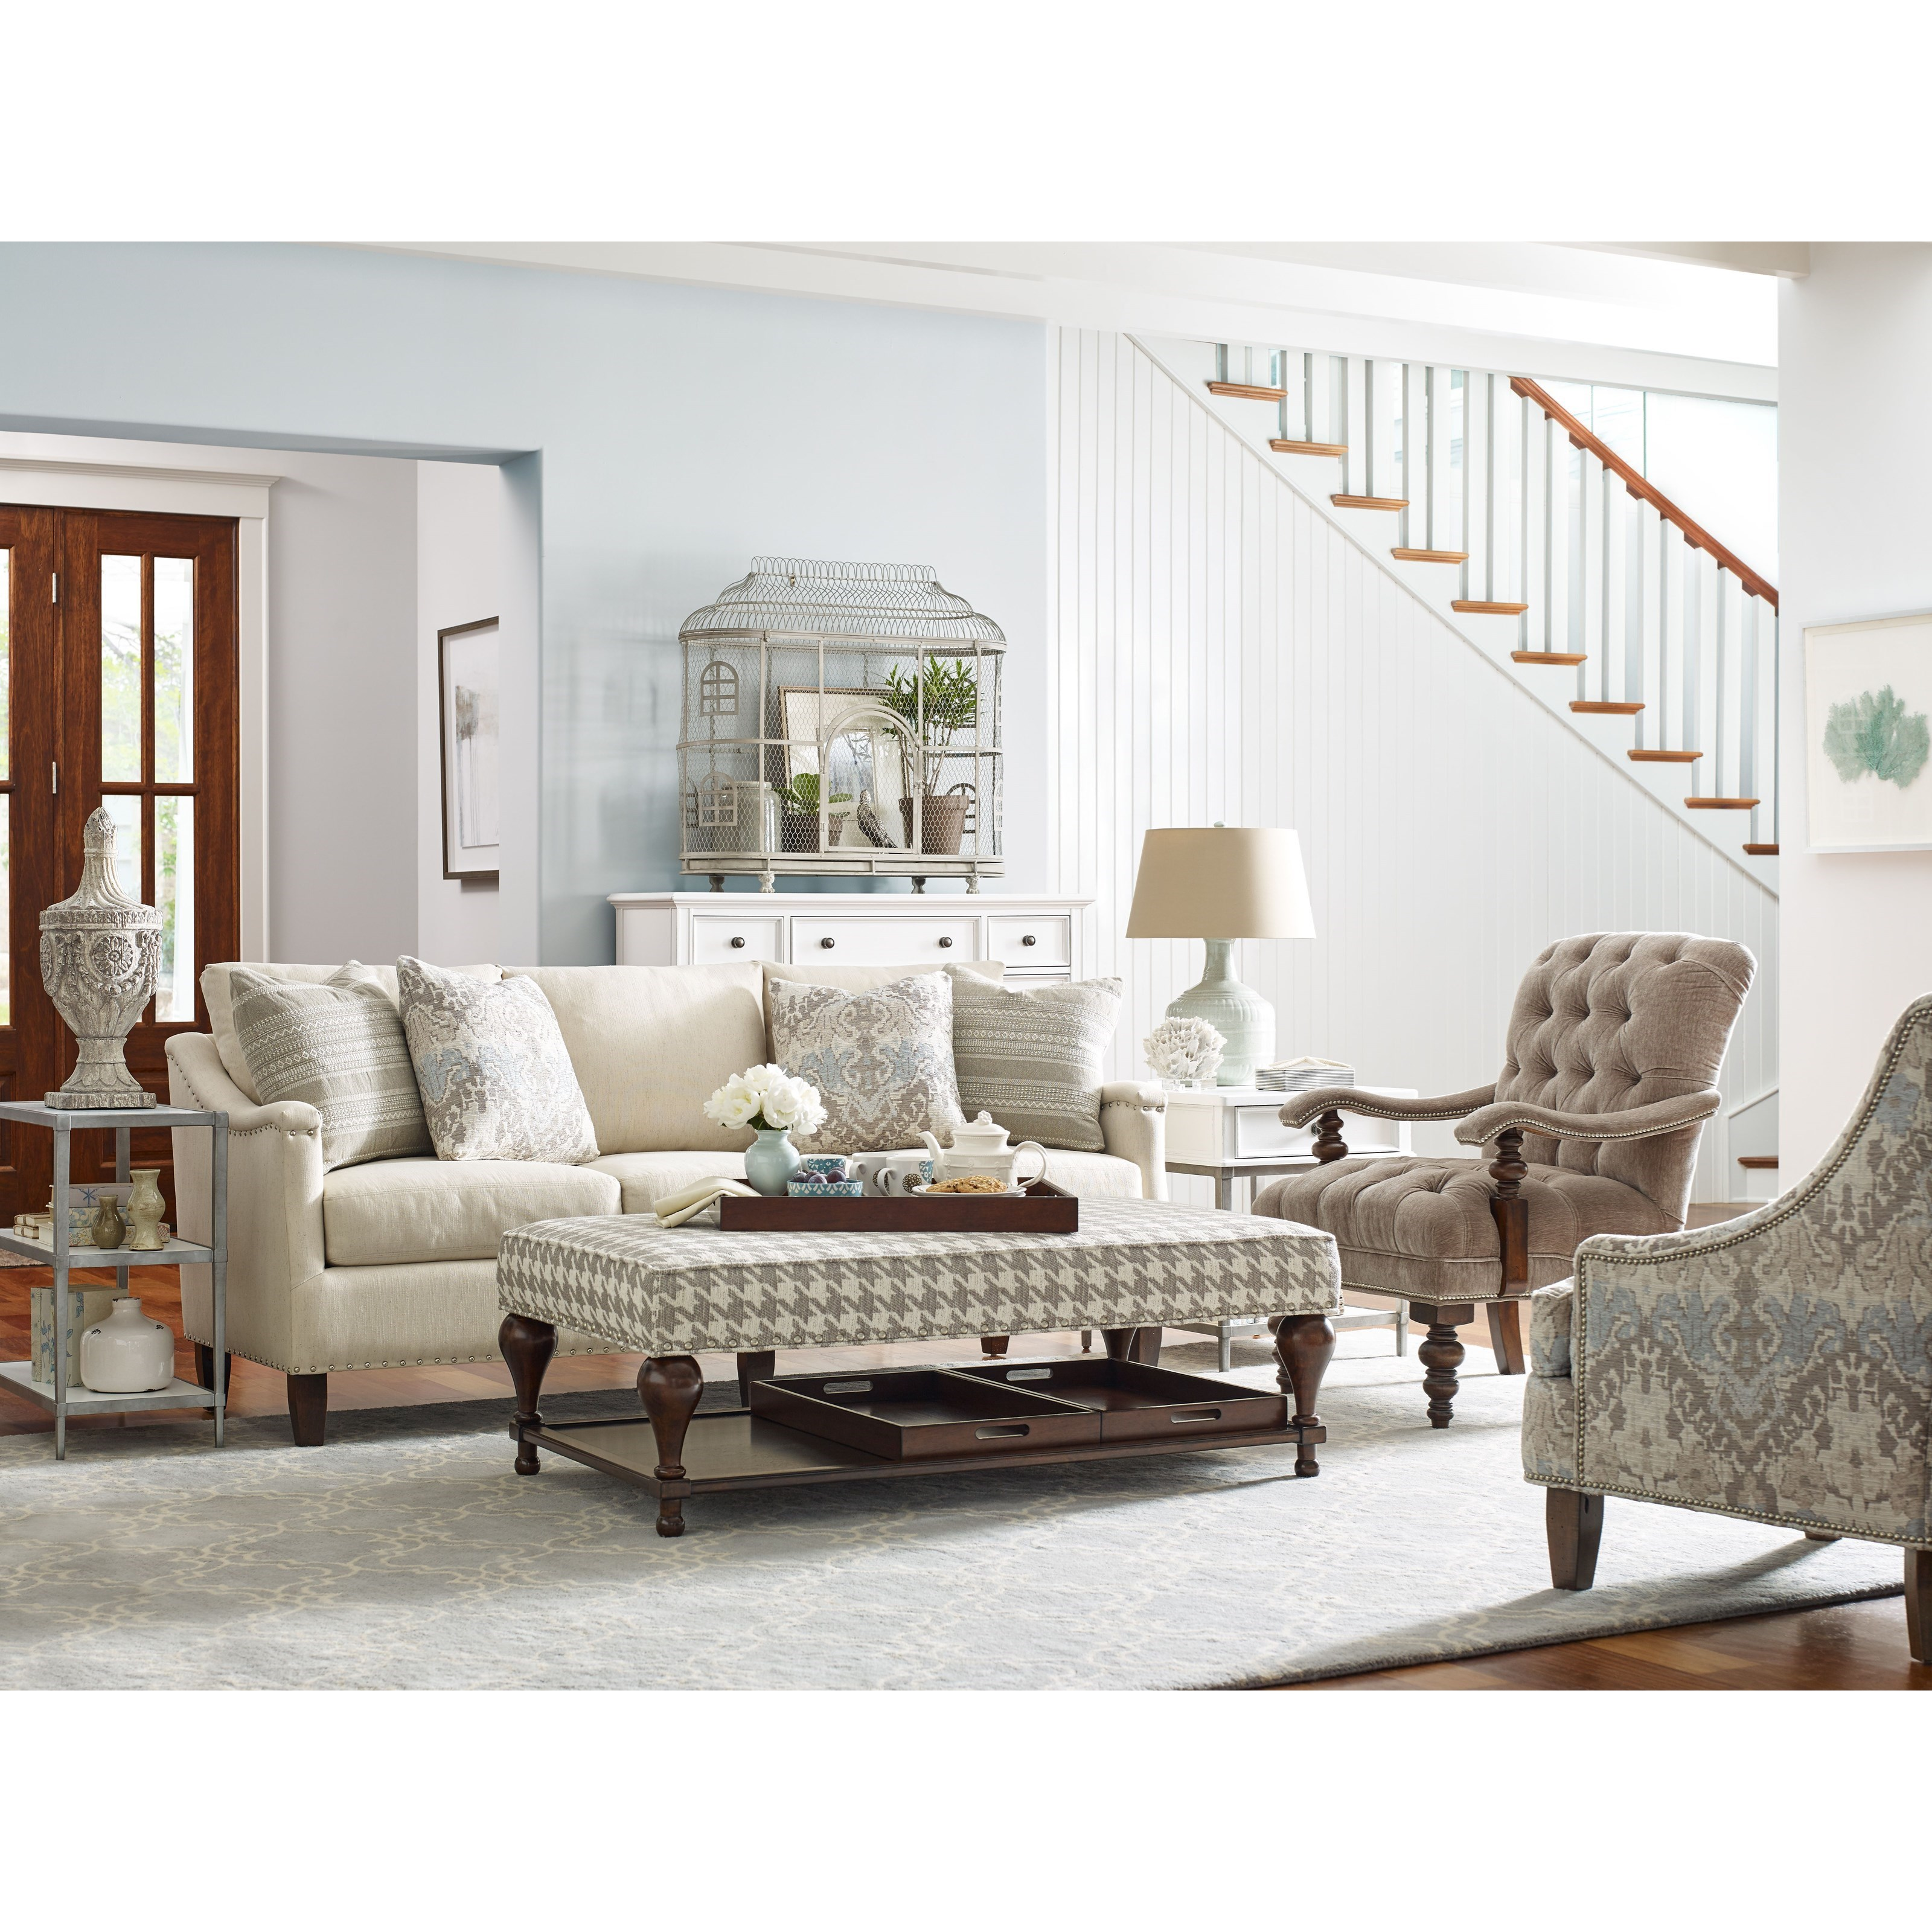 rachael ray home by craftmaster upstate saratoga sofa with. Black Bedroom Furniture Sets. Home Design Ideas